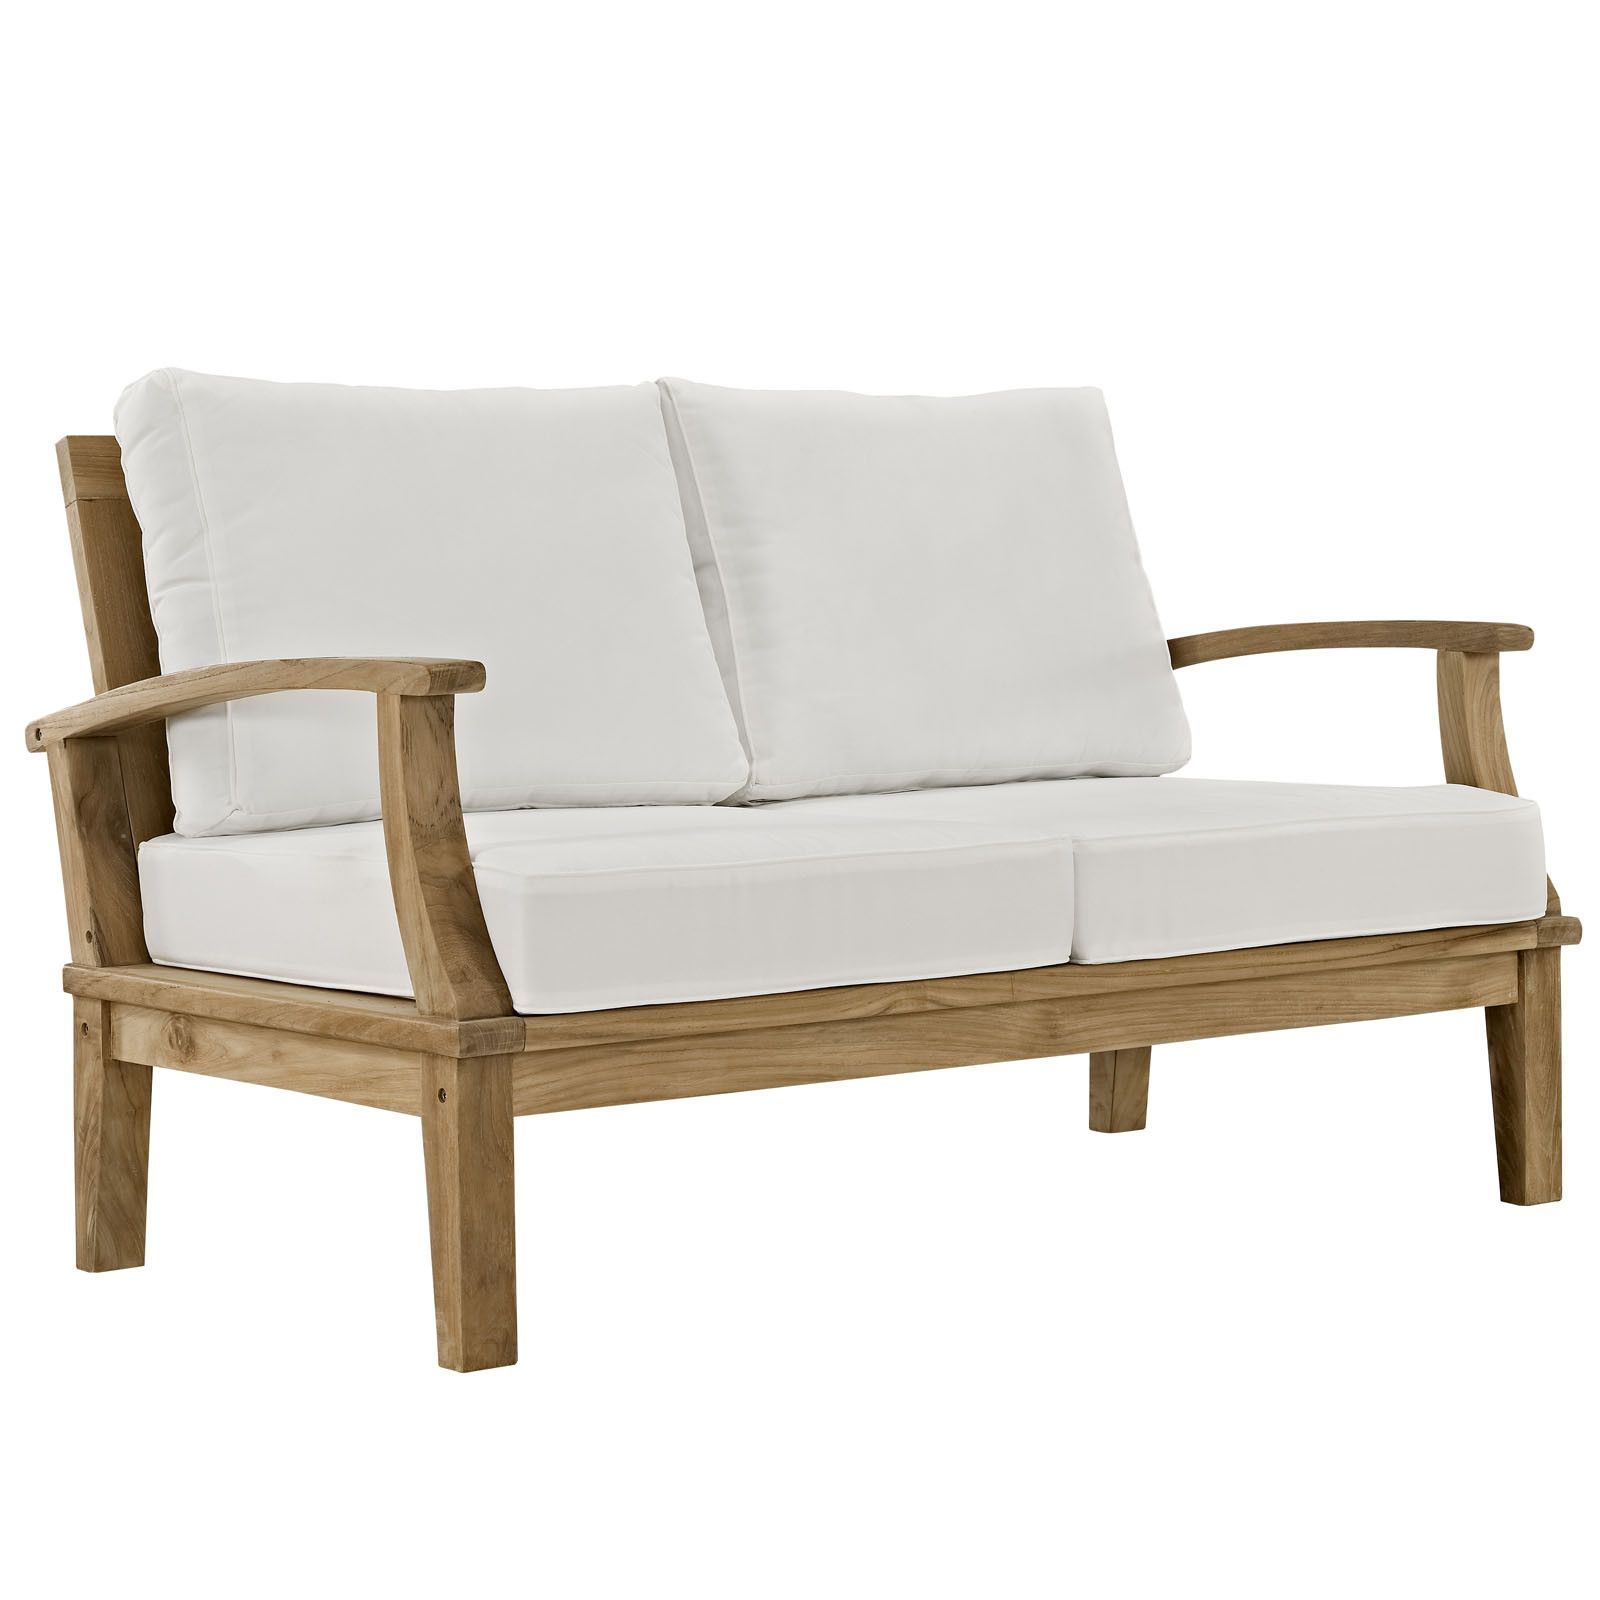 Marina Outdoor Patio Teak Loveseat in Natural White | Decor ...